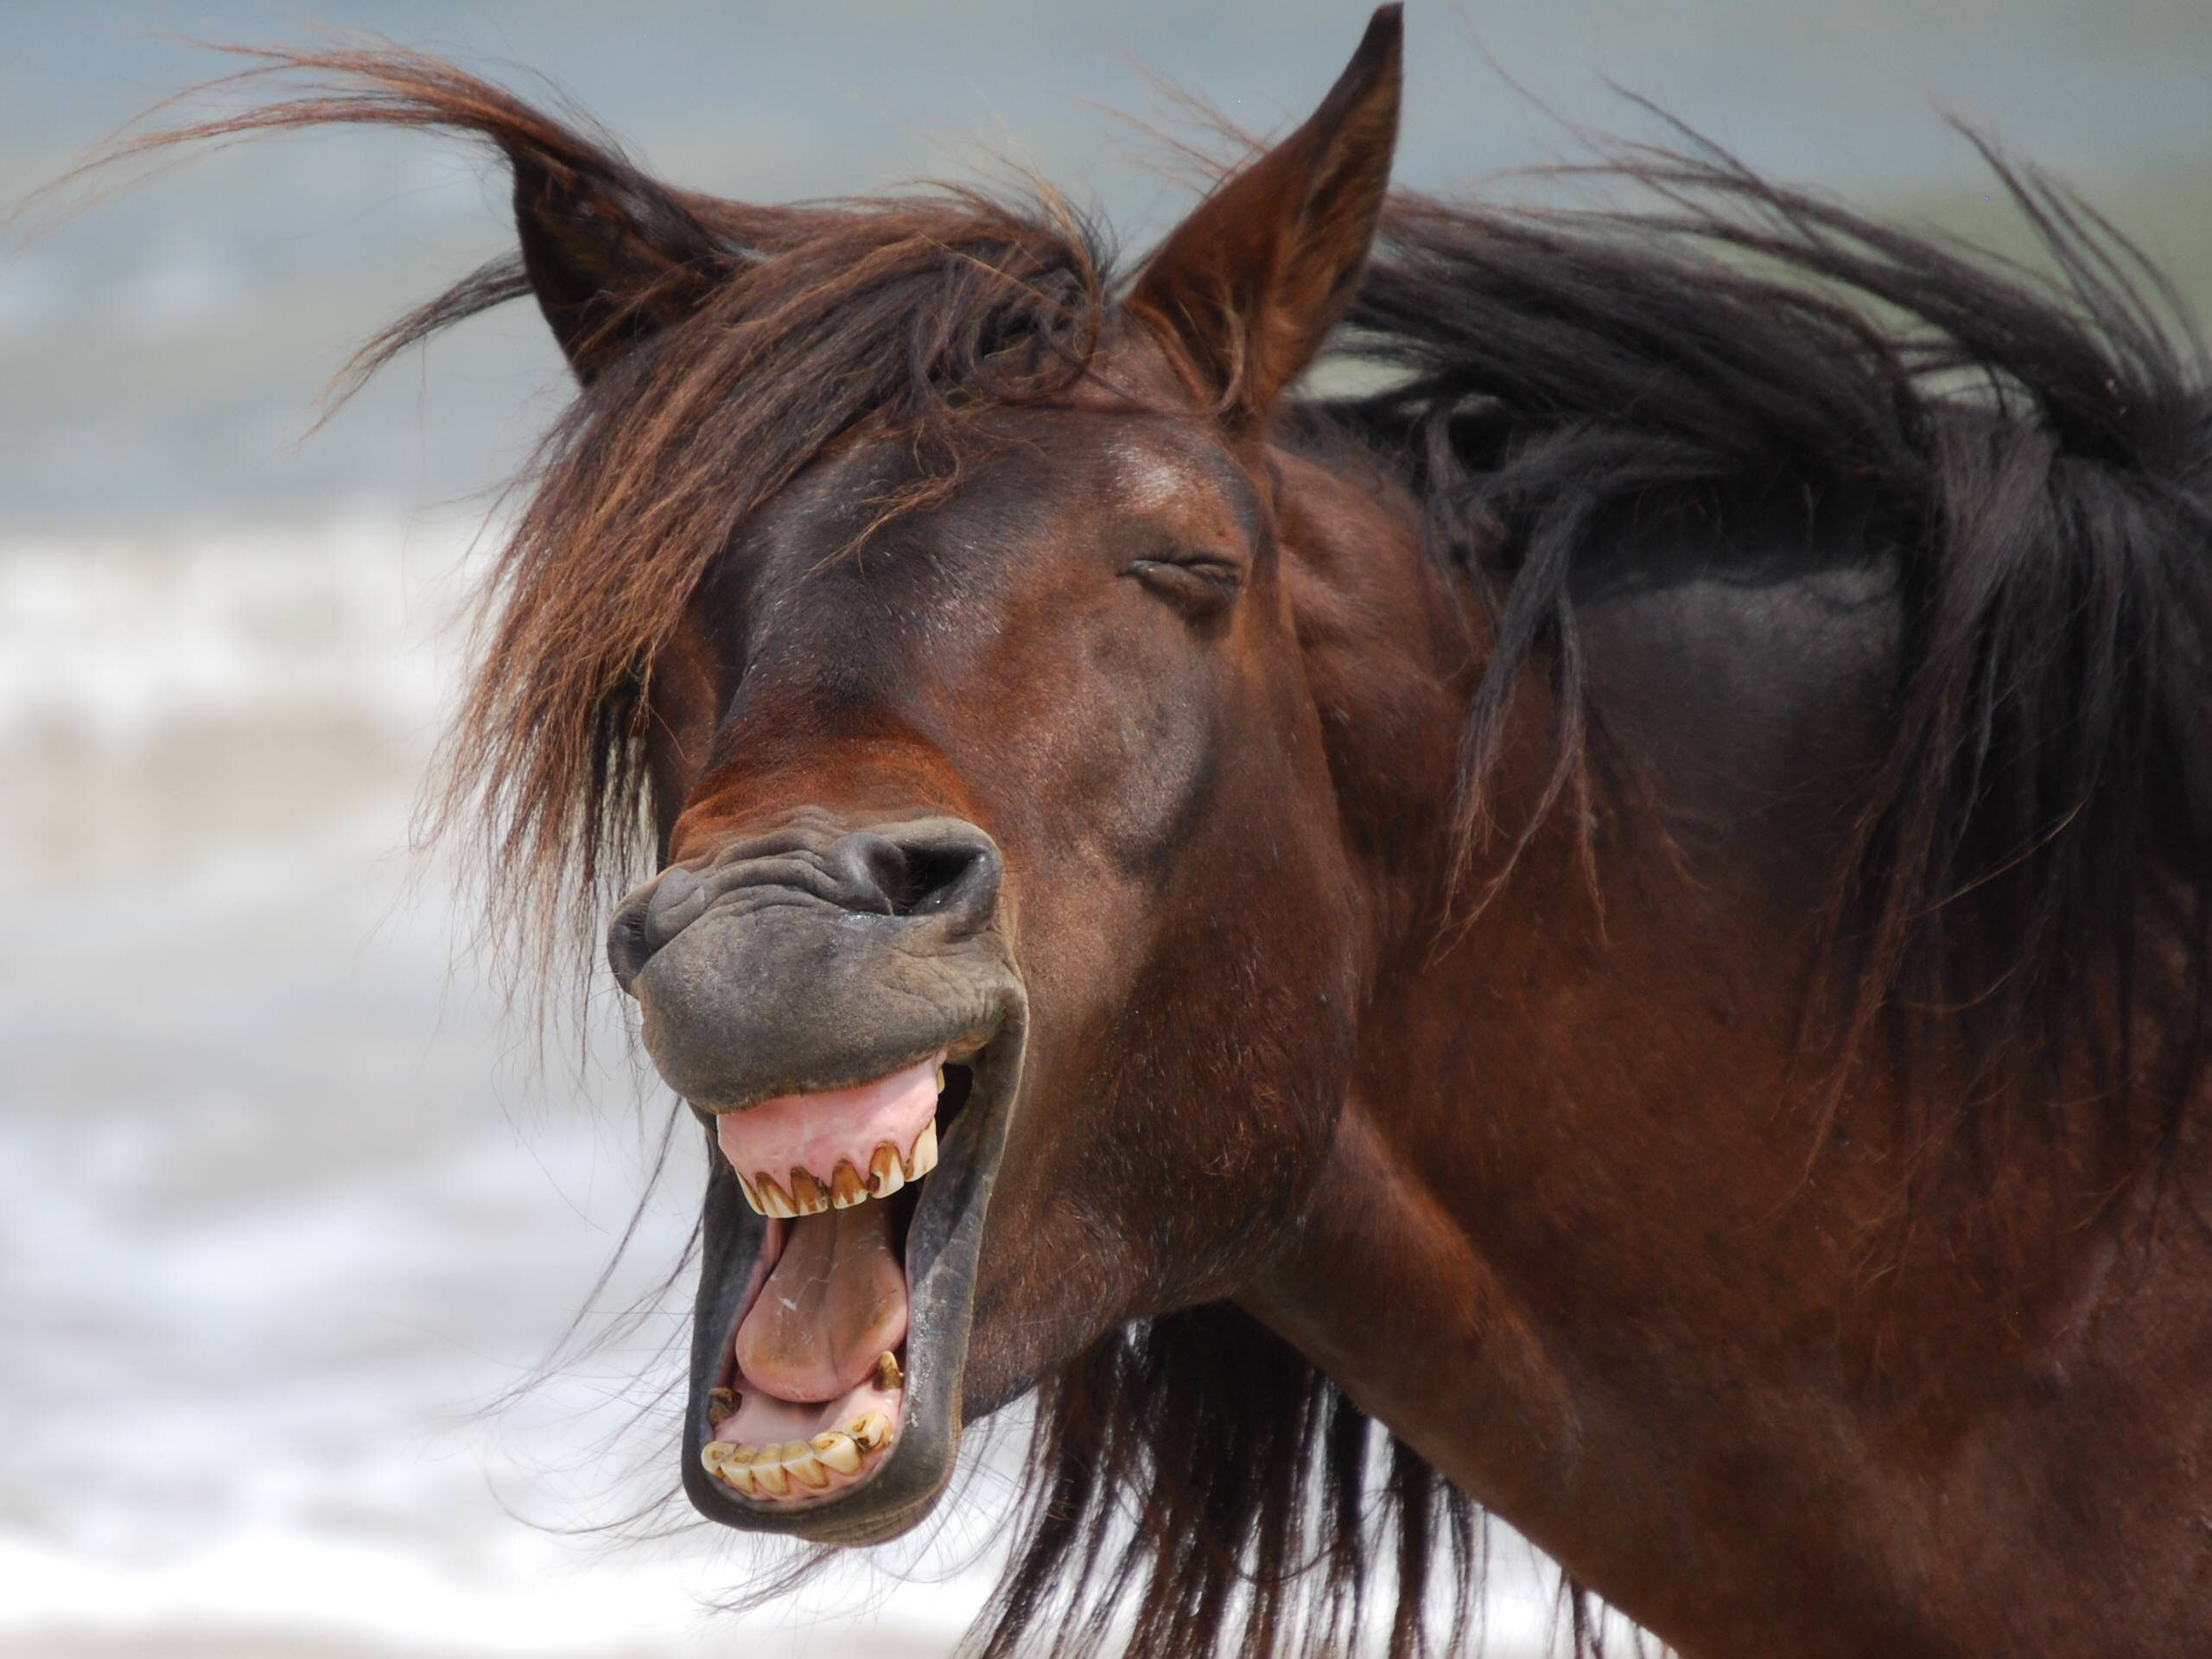 Top 10 Images of Laughing Horses